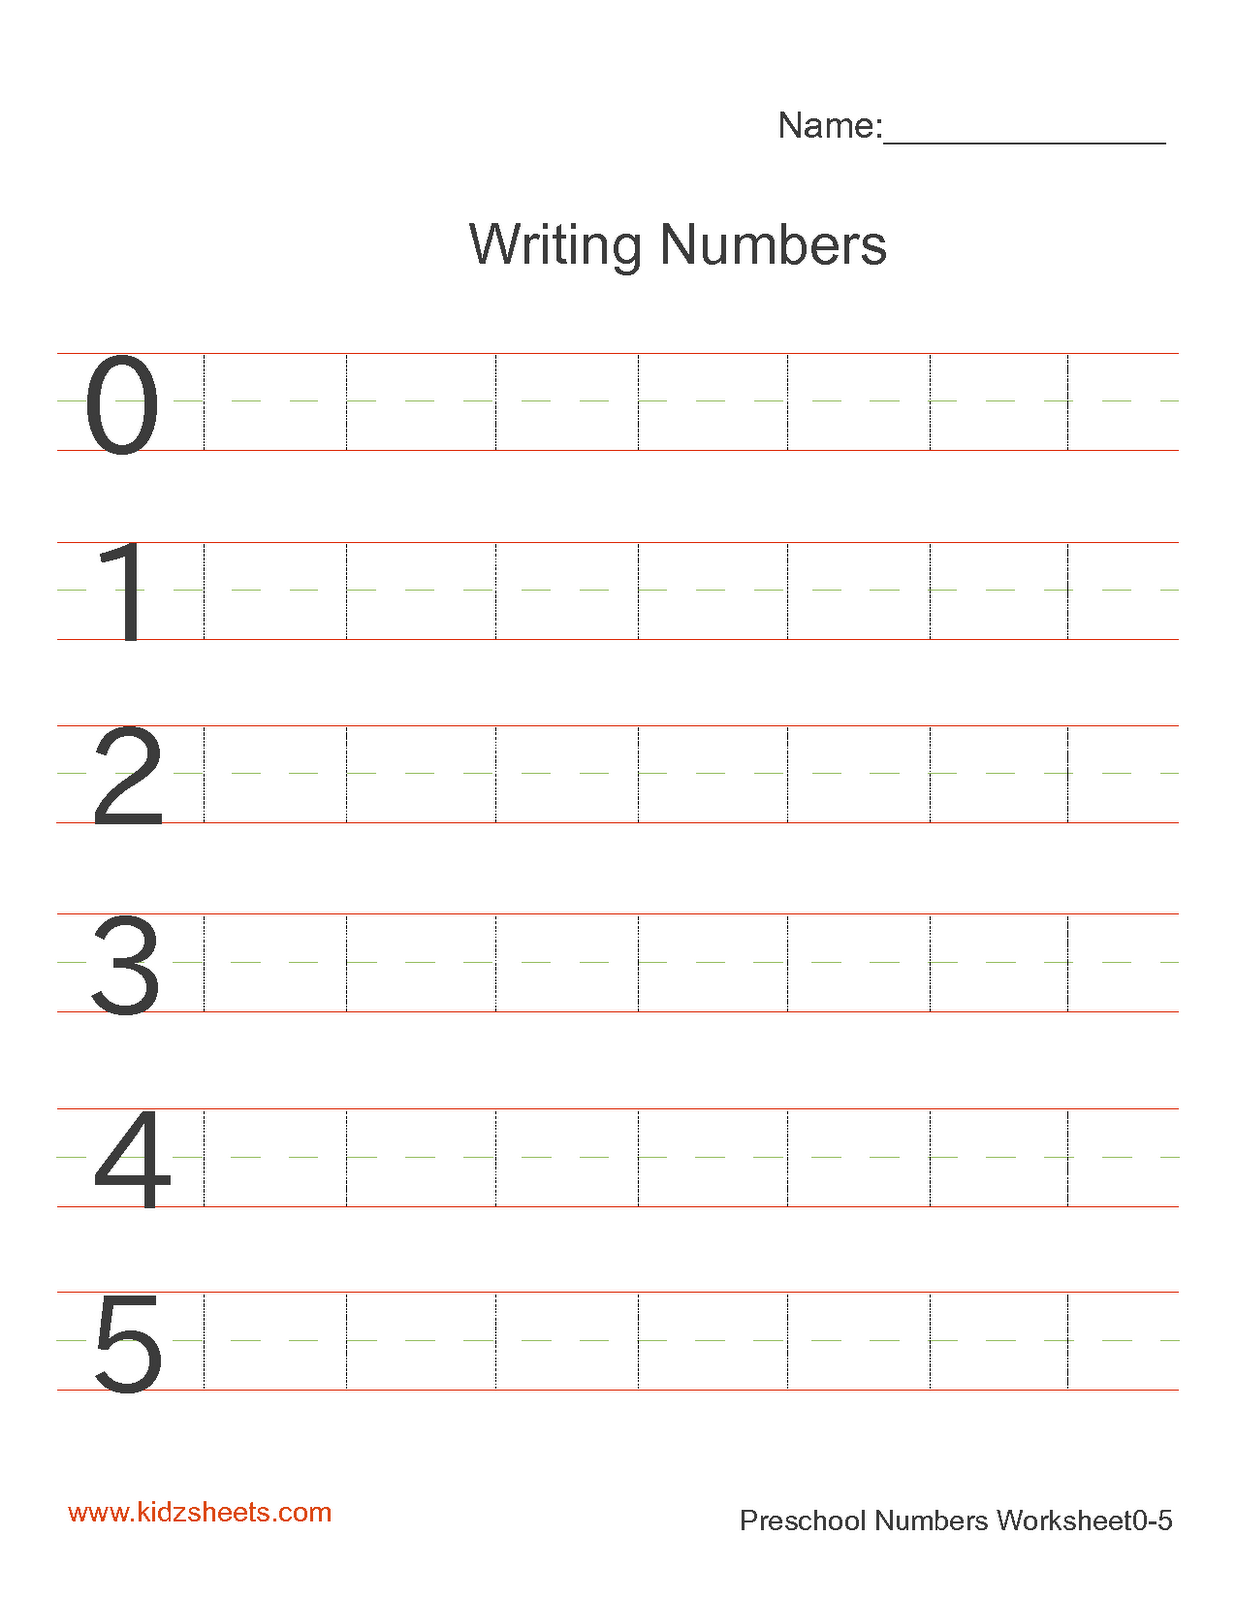 Free Printable Preschool Writing Numbers Worksheets Free Worksheets Kids Maths Worksheets